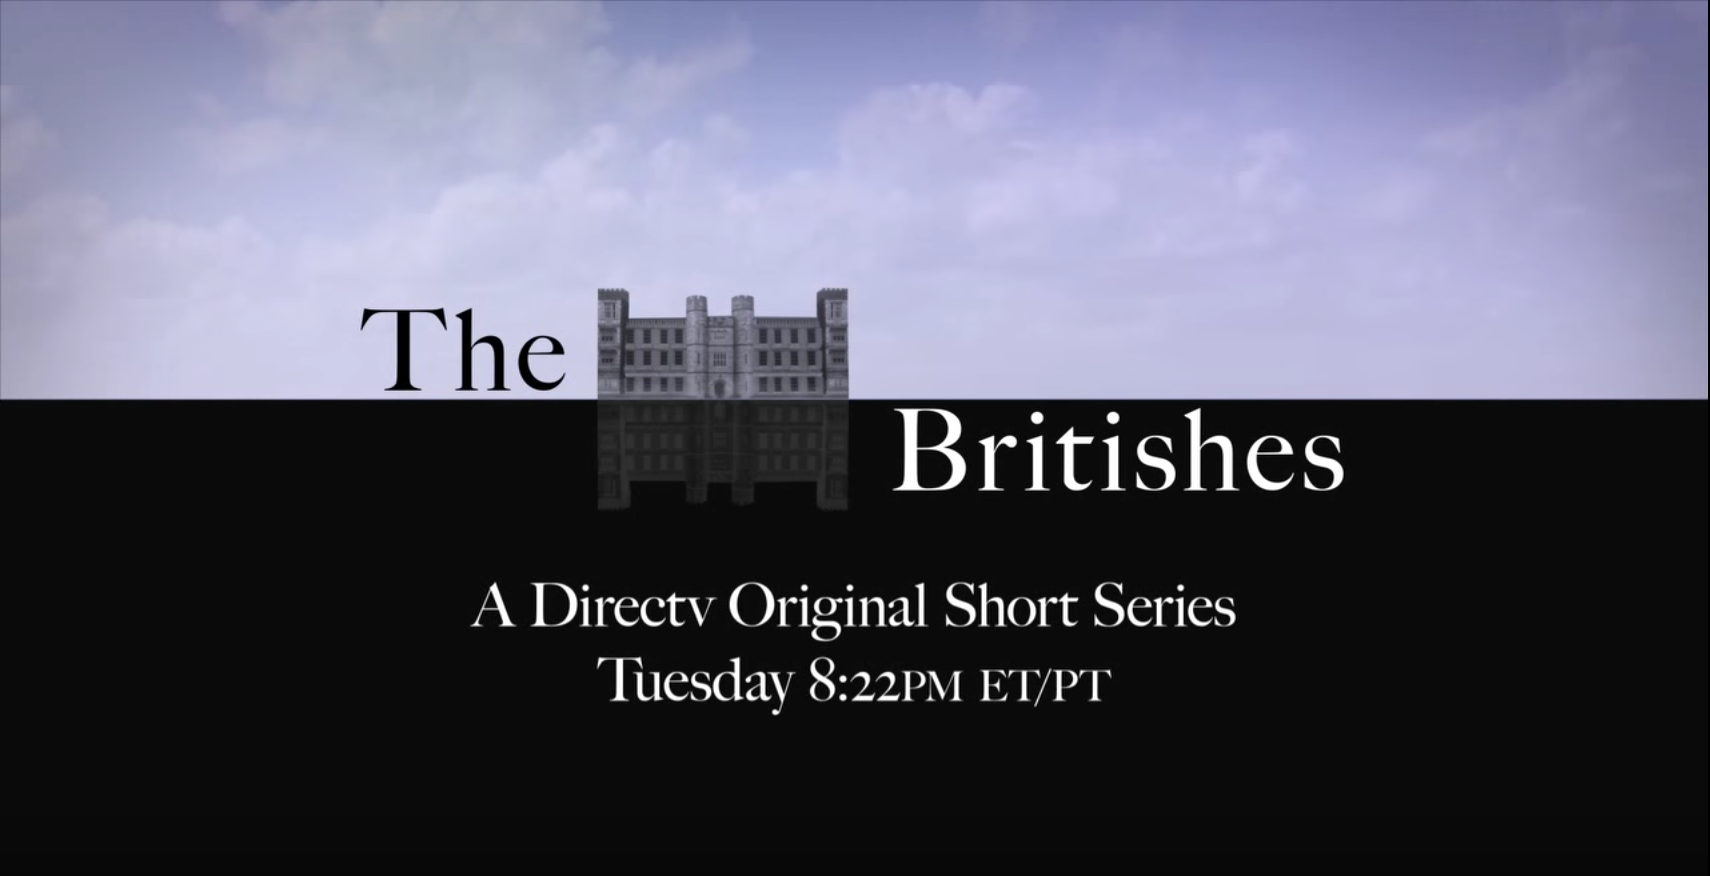 THE BRITISHES